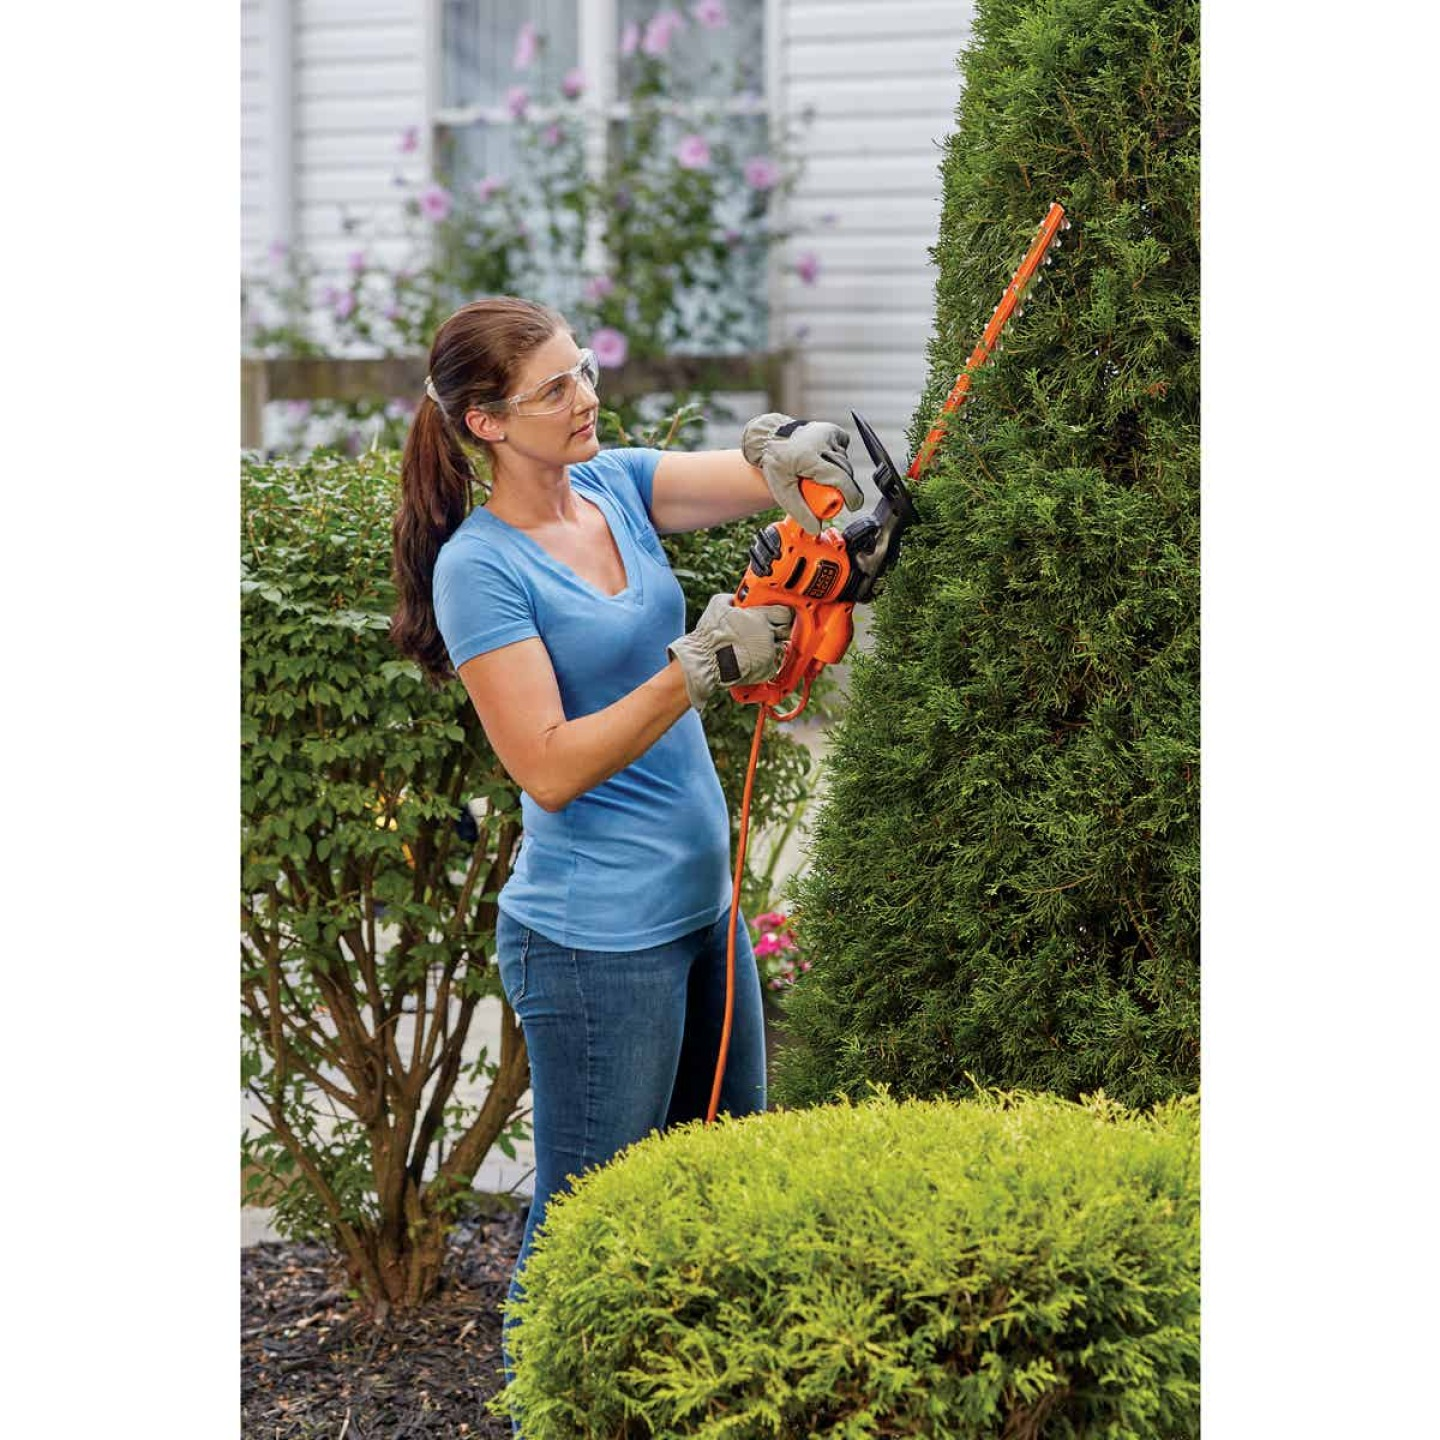 Black & Decker 16 In. 3-Amp Corded Electric Hedge Trimmer Image 3